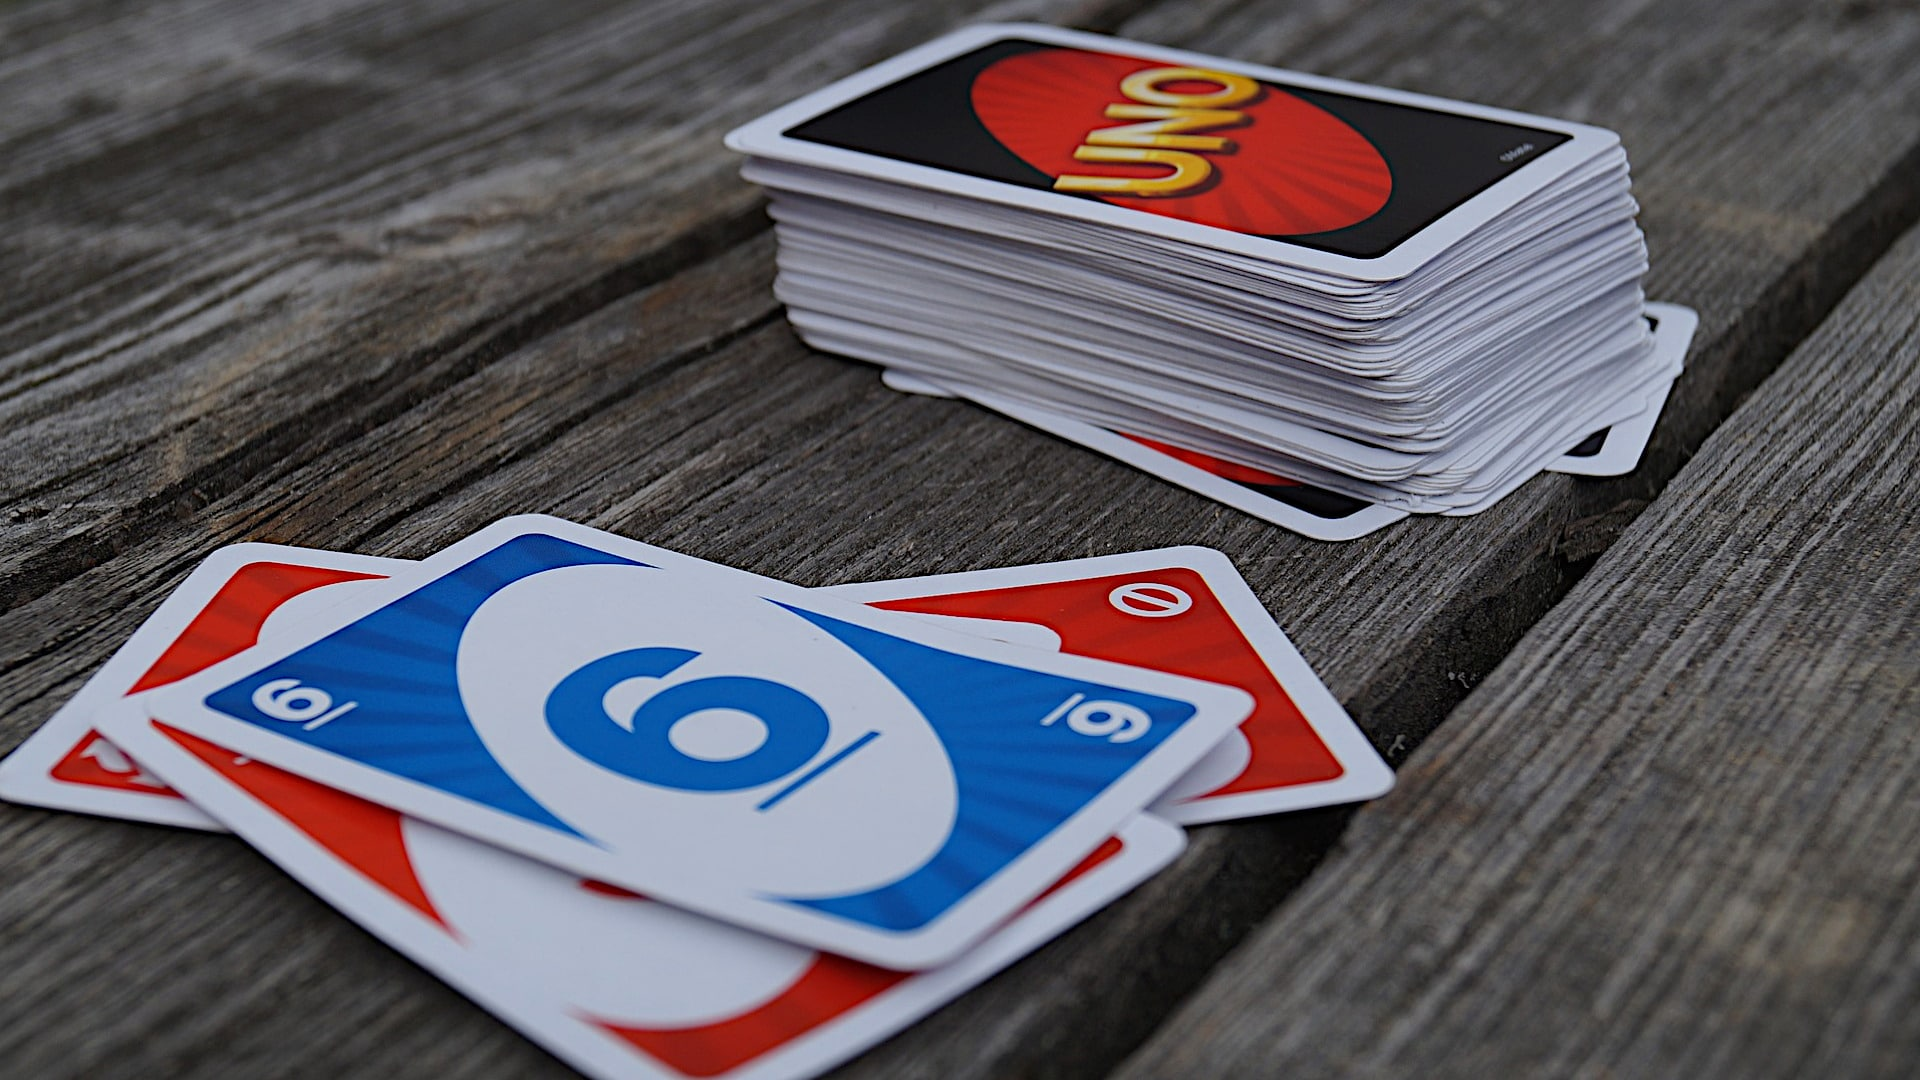 How to play Uno?